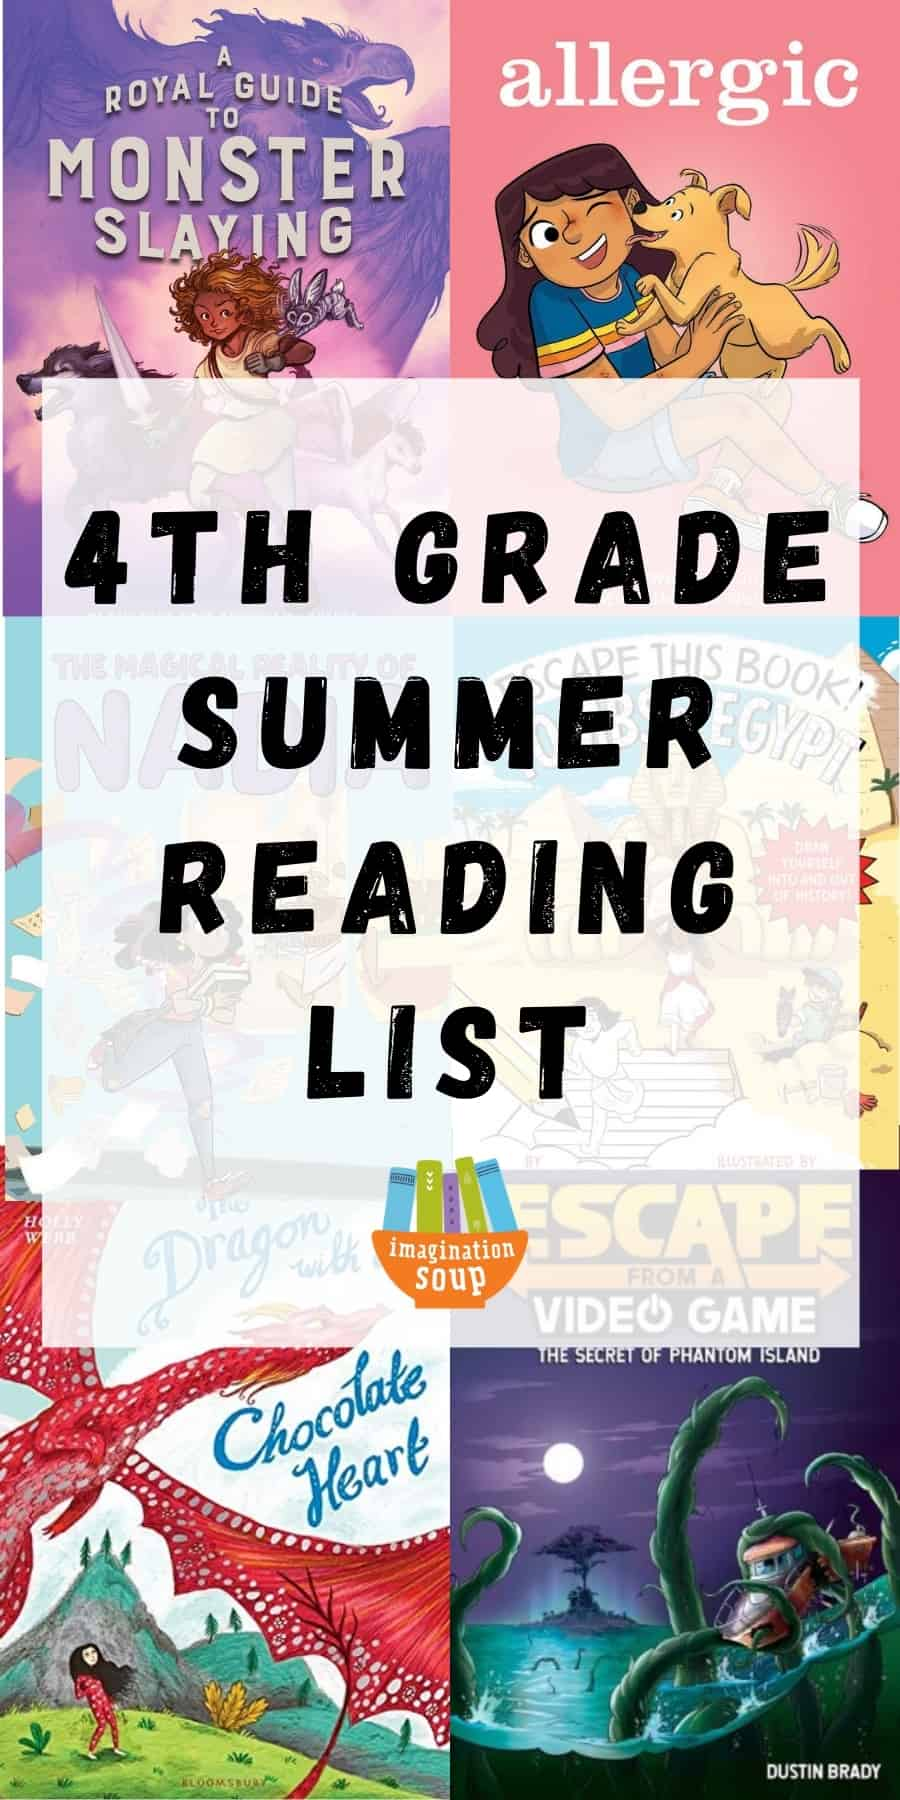 4th grade summer book list for kids ages 9 and 10